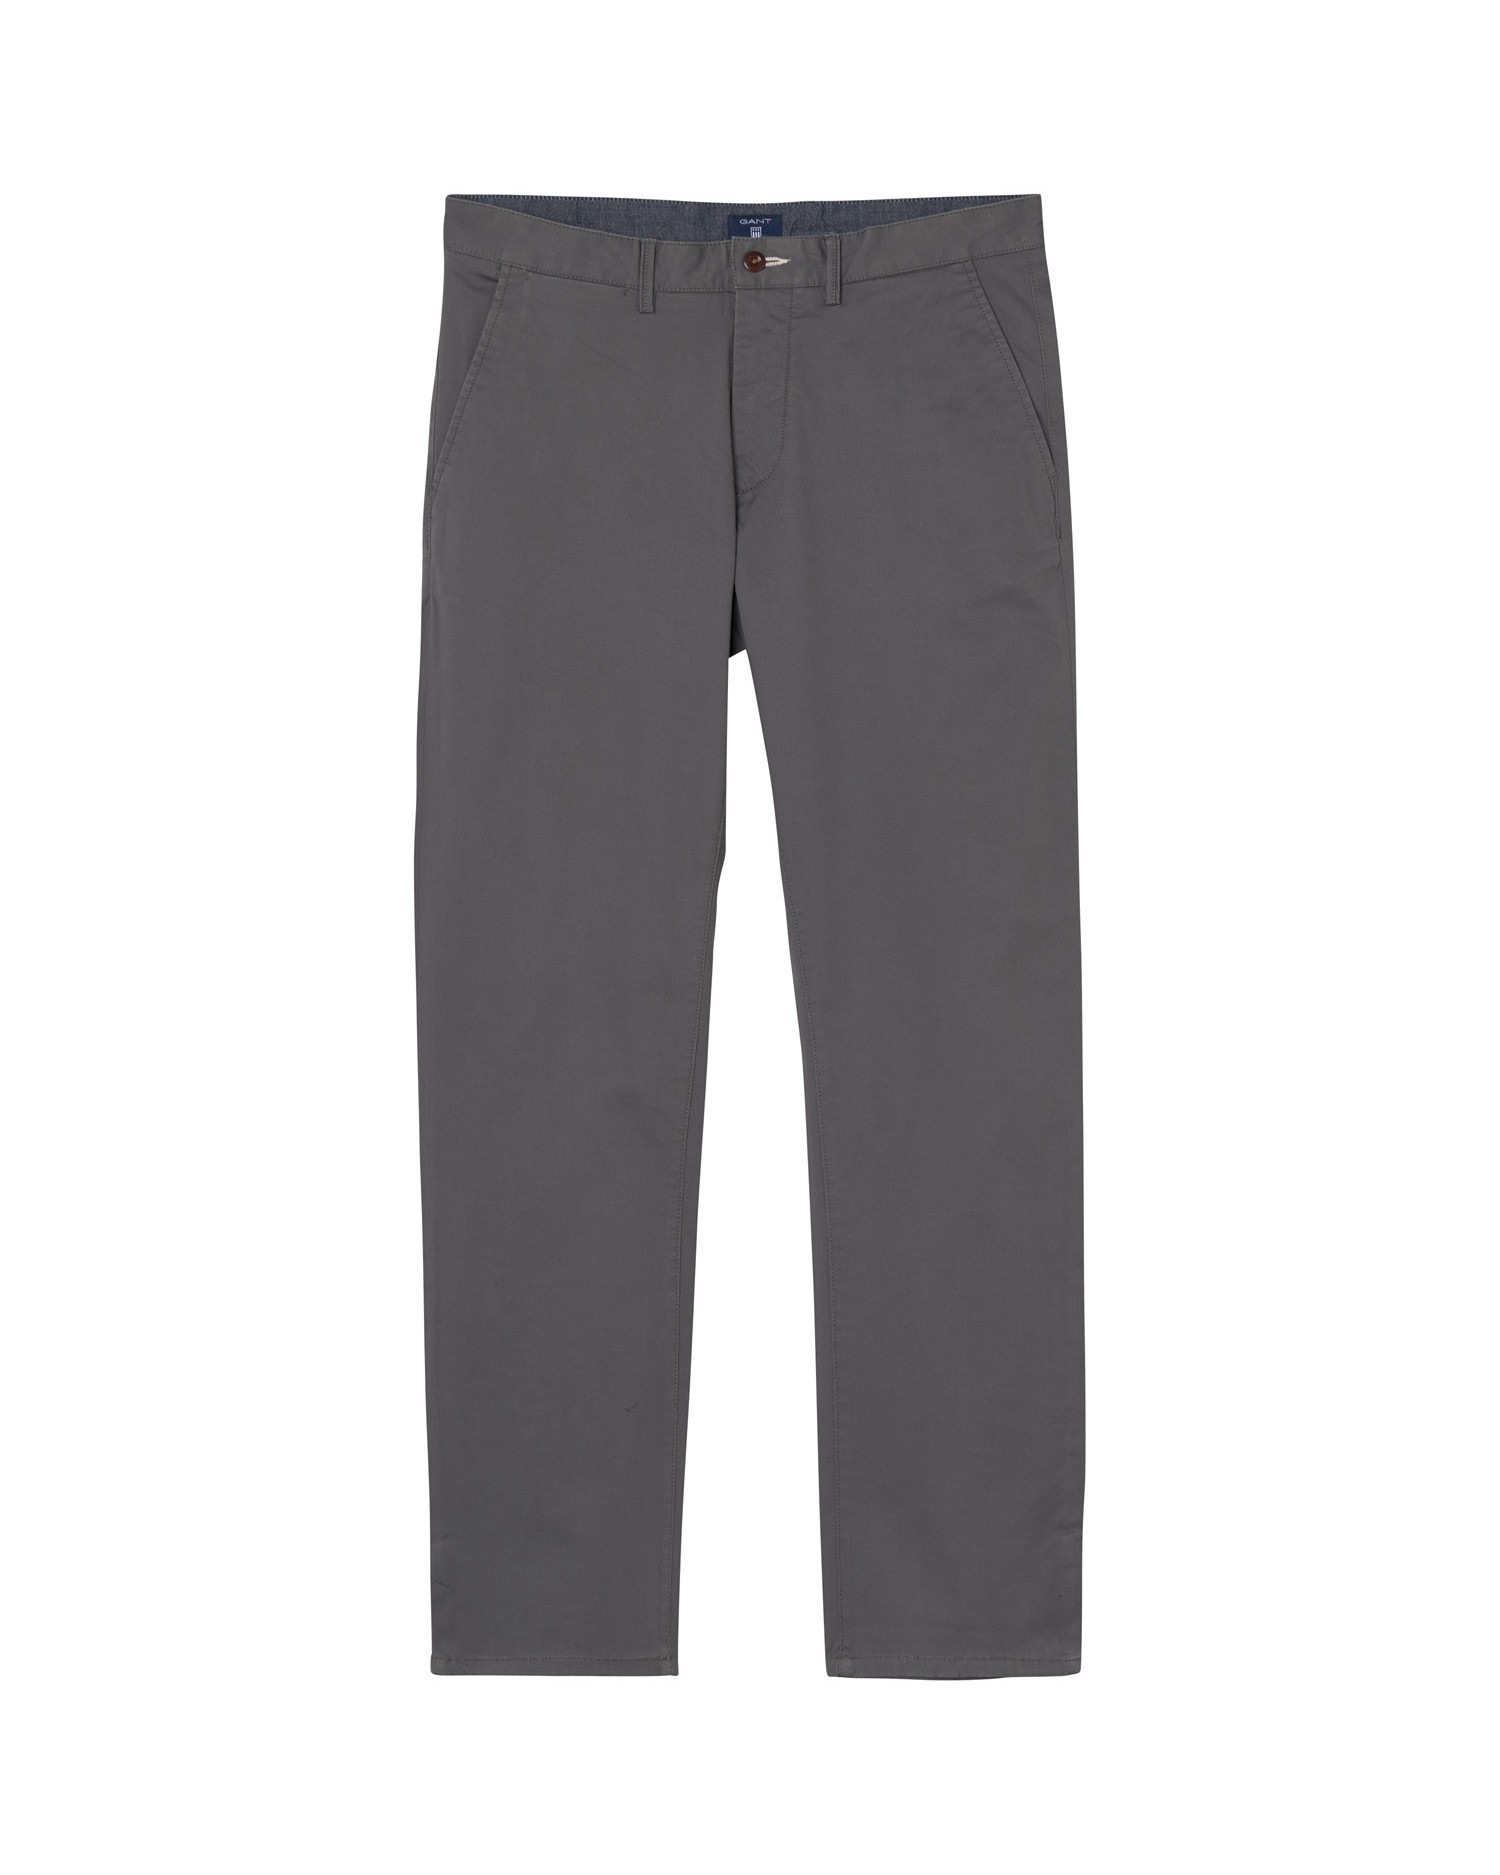 GANT Men's Regular Fit Twill Chino - 1500150